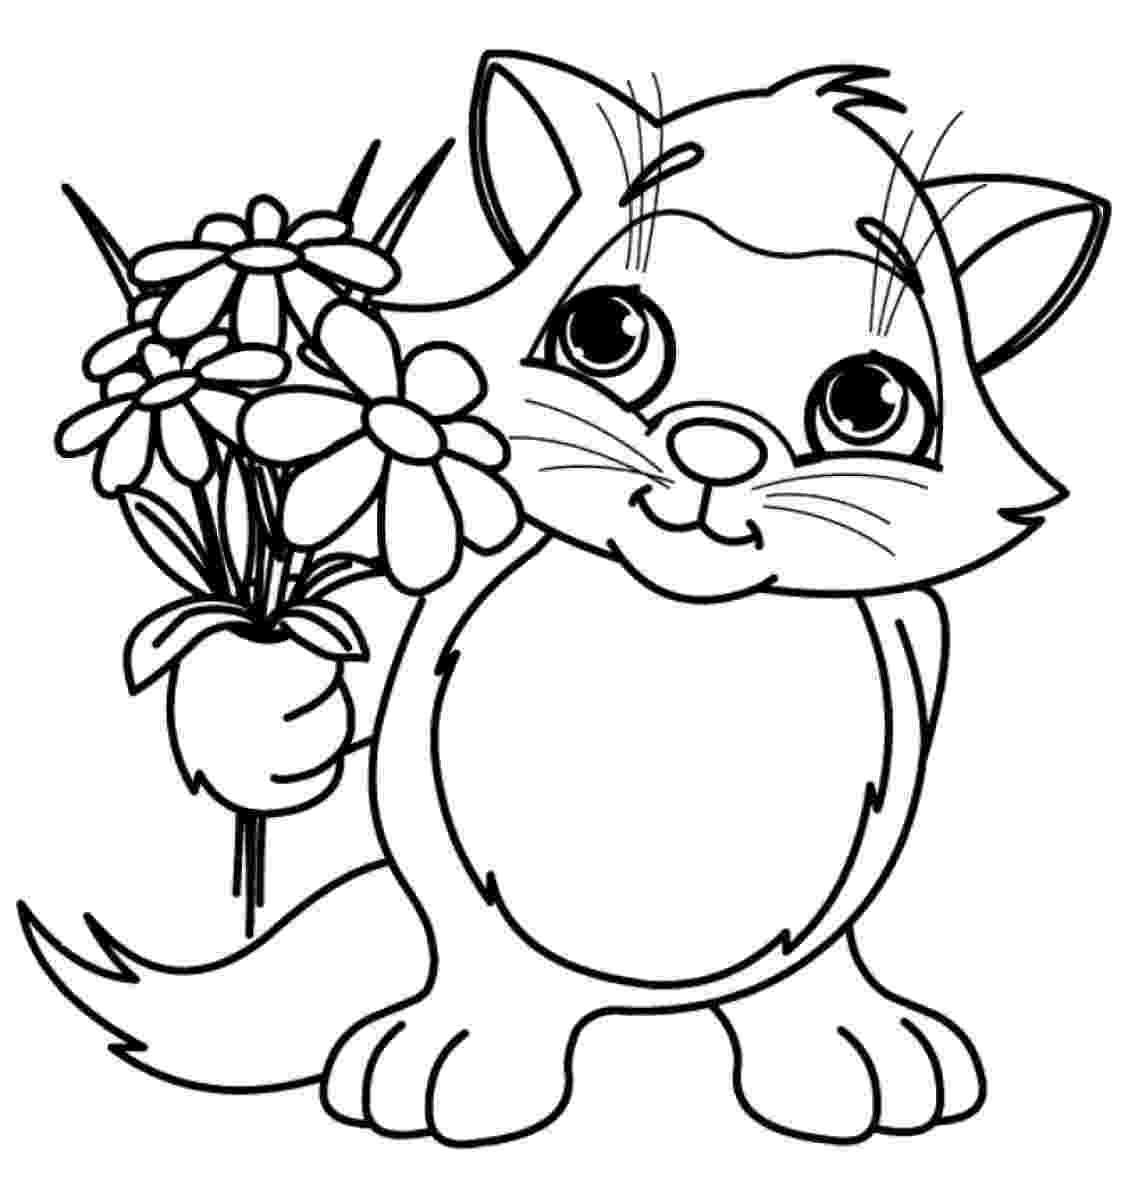 color pictures of flowers free printable flower coloring pages for kids best pictures color of flowers